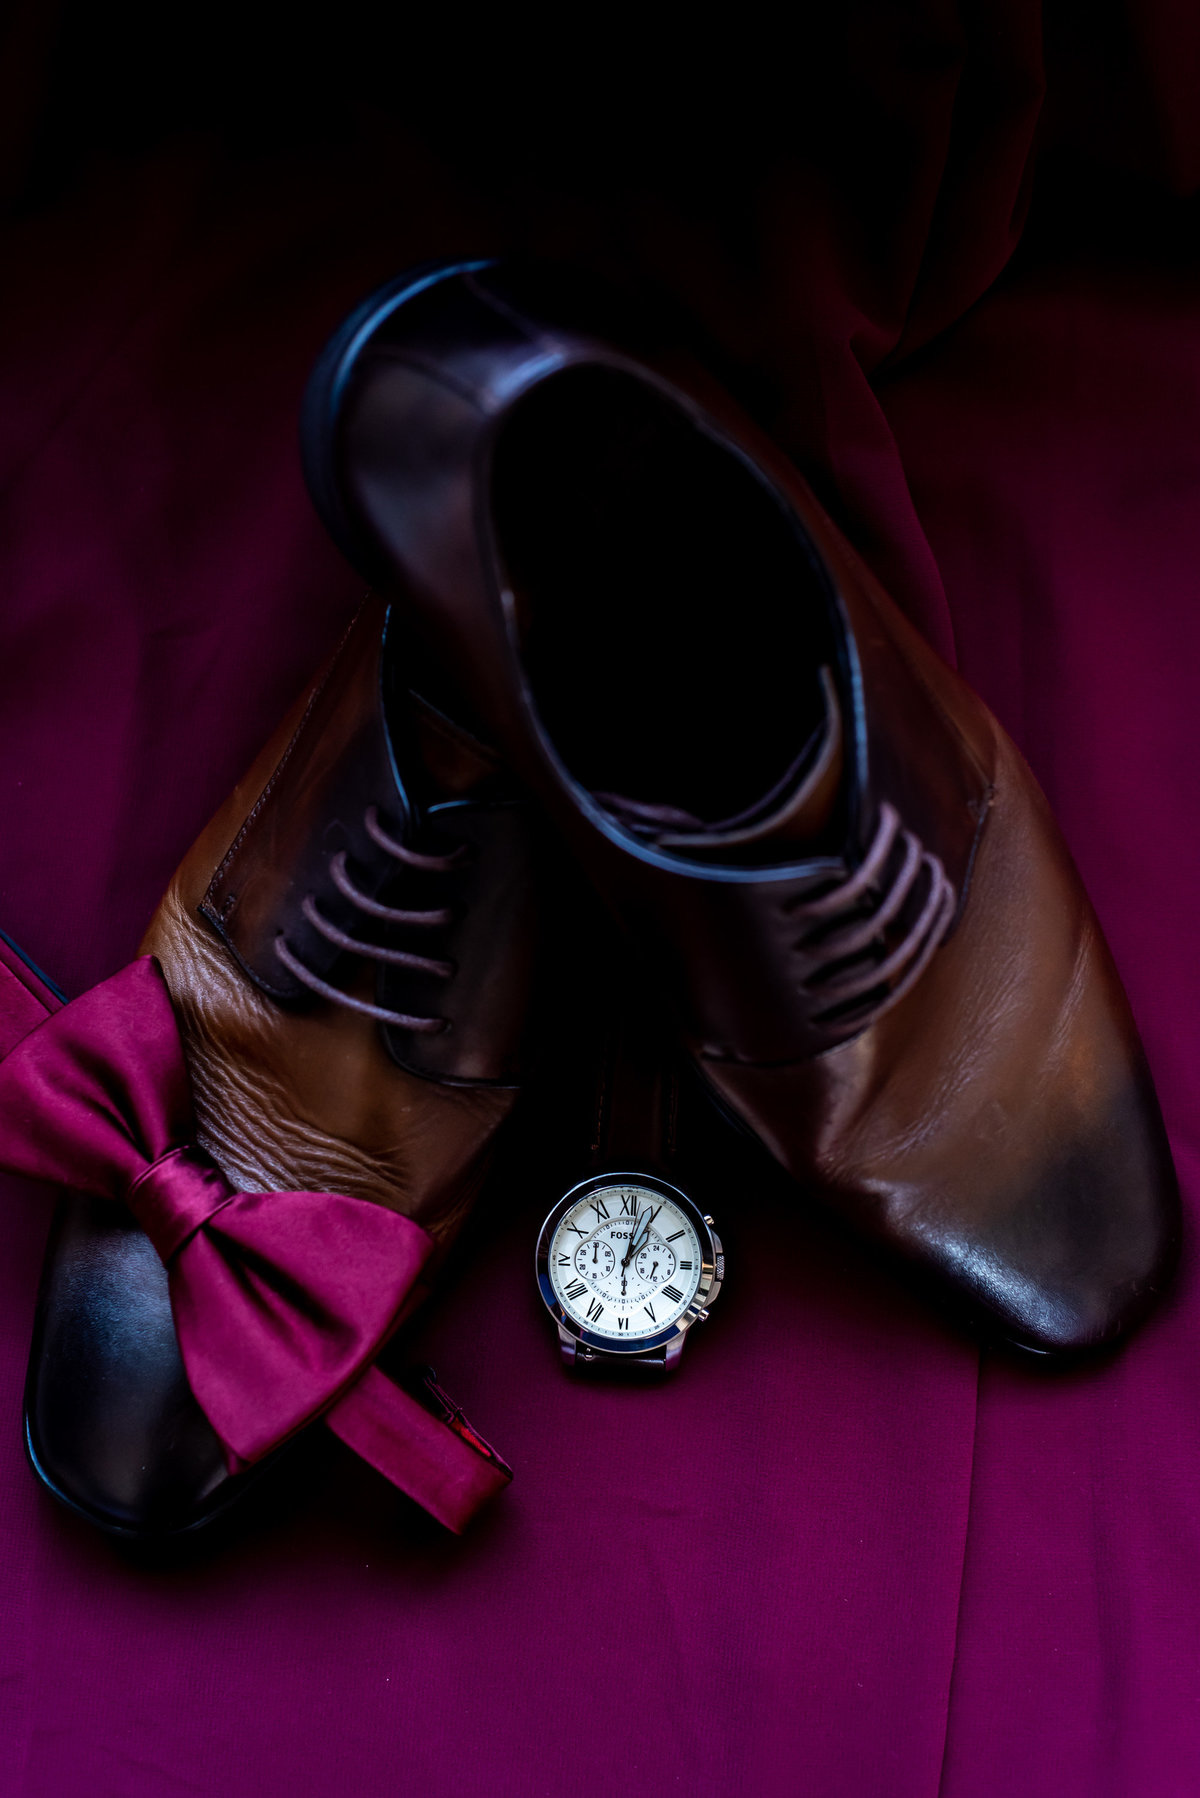 Bold wedding photo with a grooms' shoes and accessories.